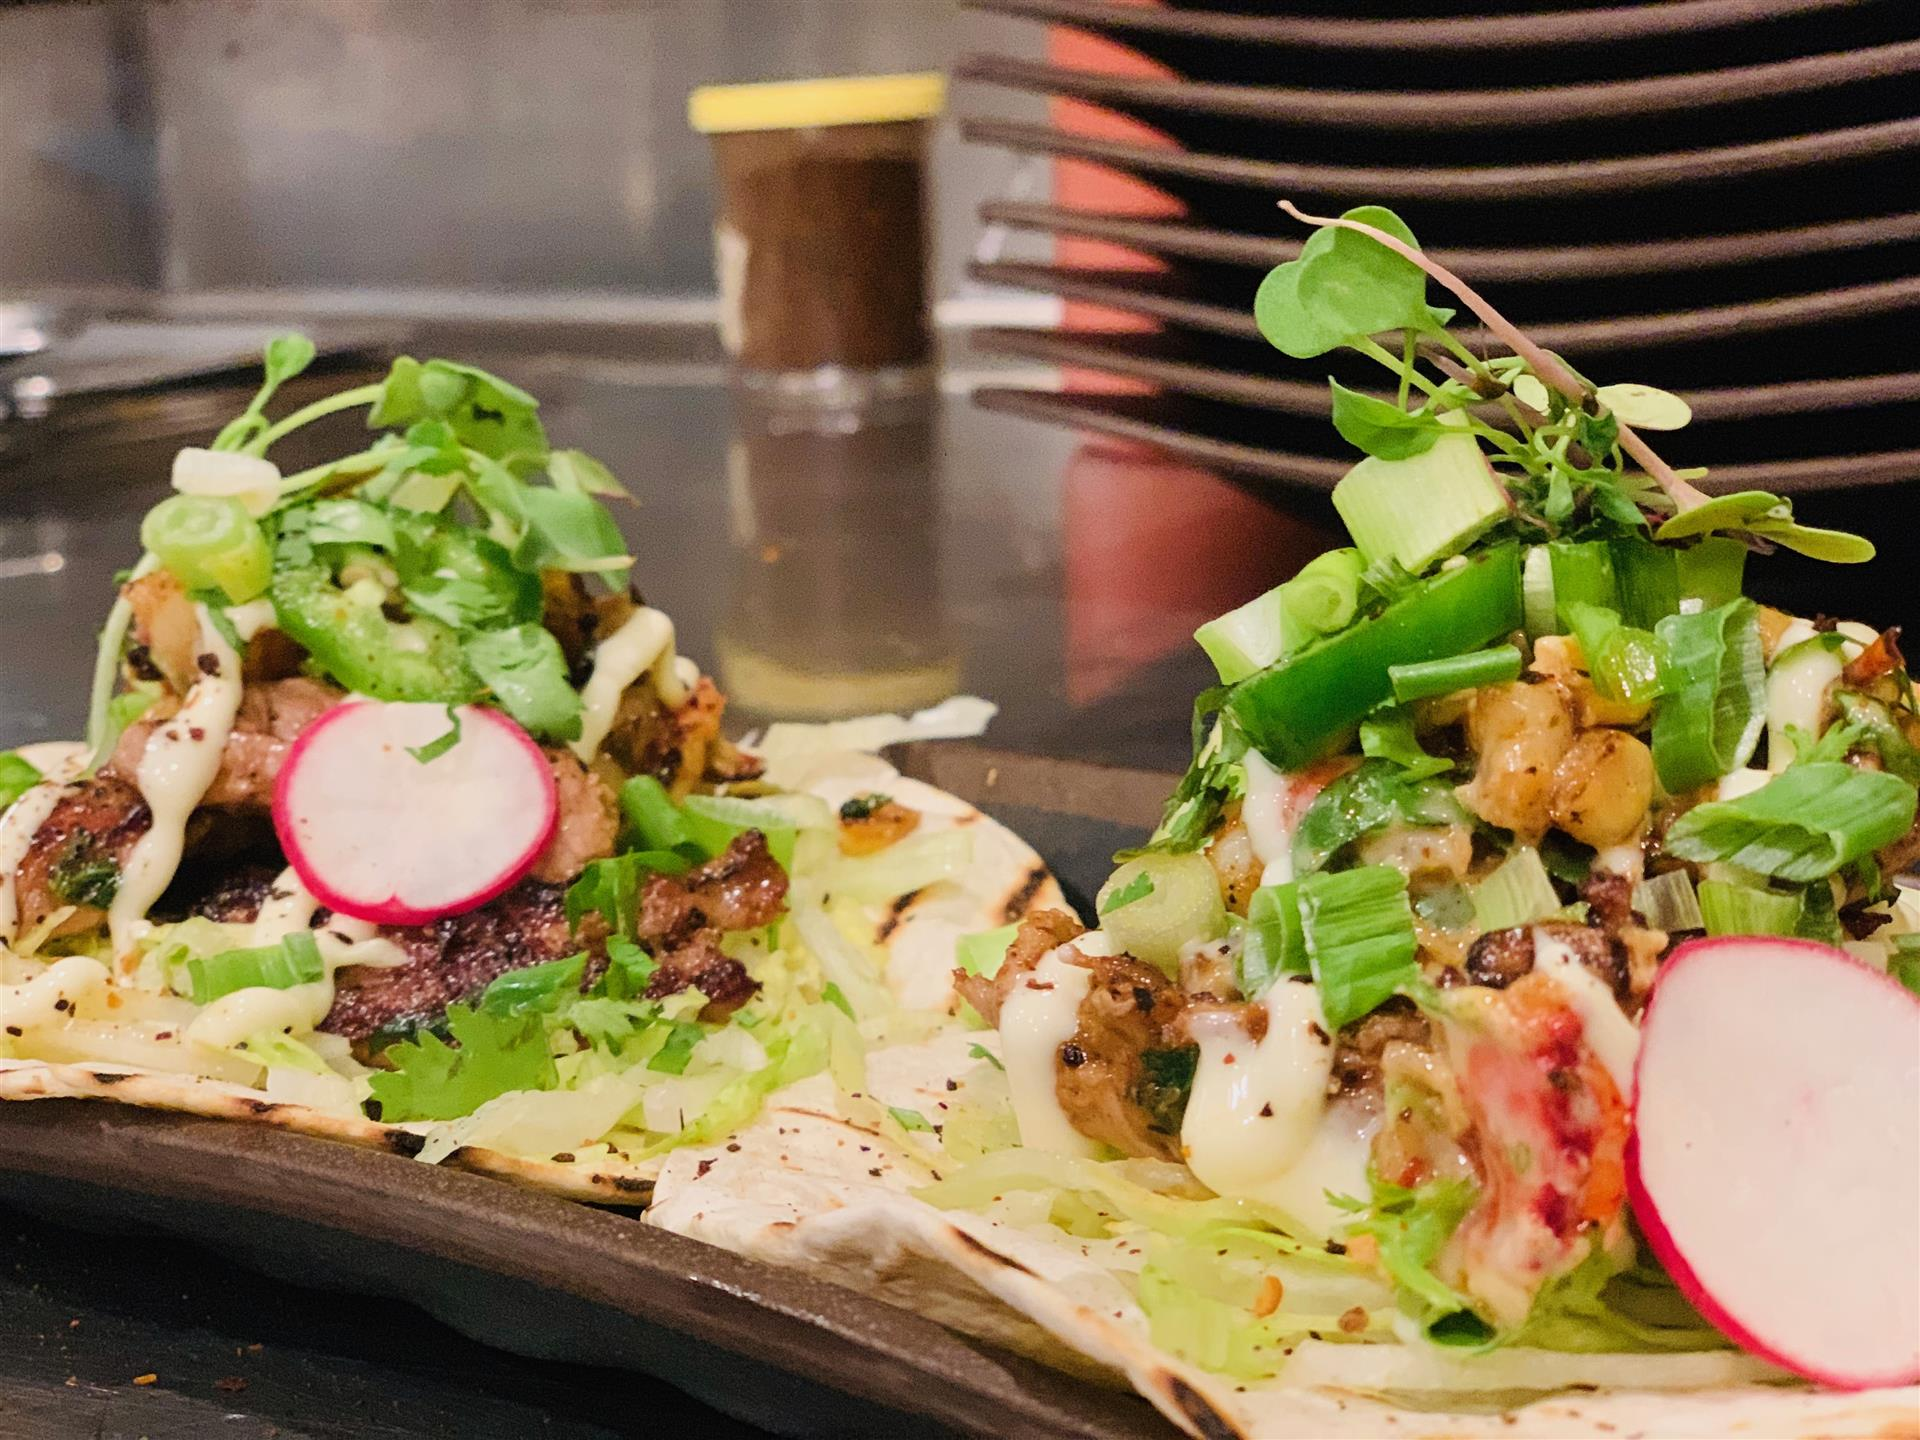 Two tacos with lettuce, scallions, radish and choice of meat on flour tortillas